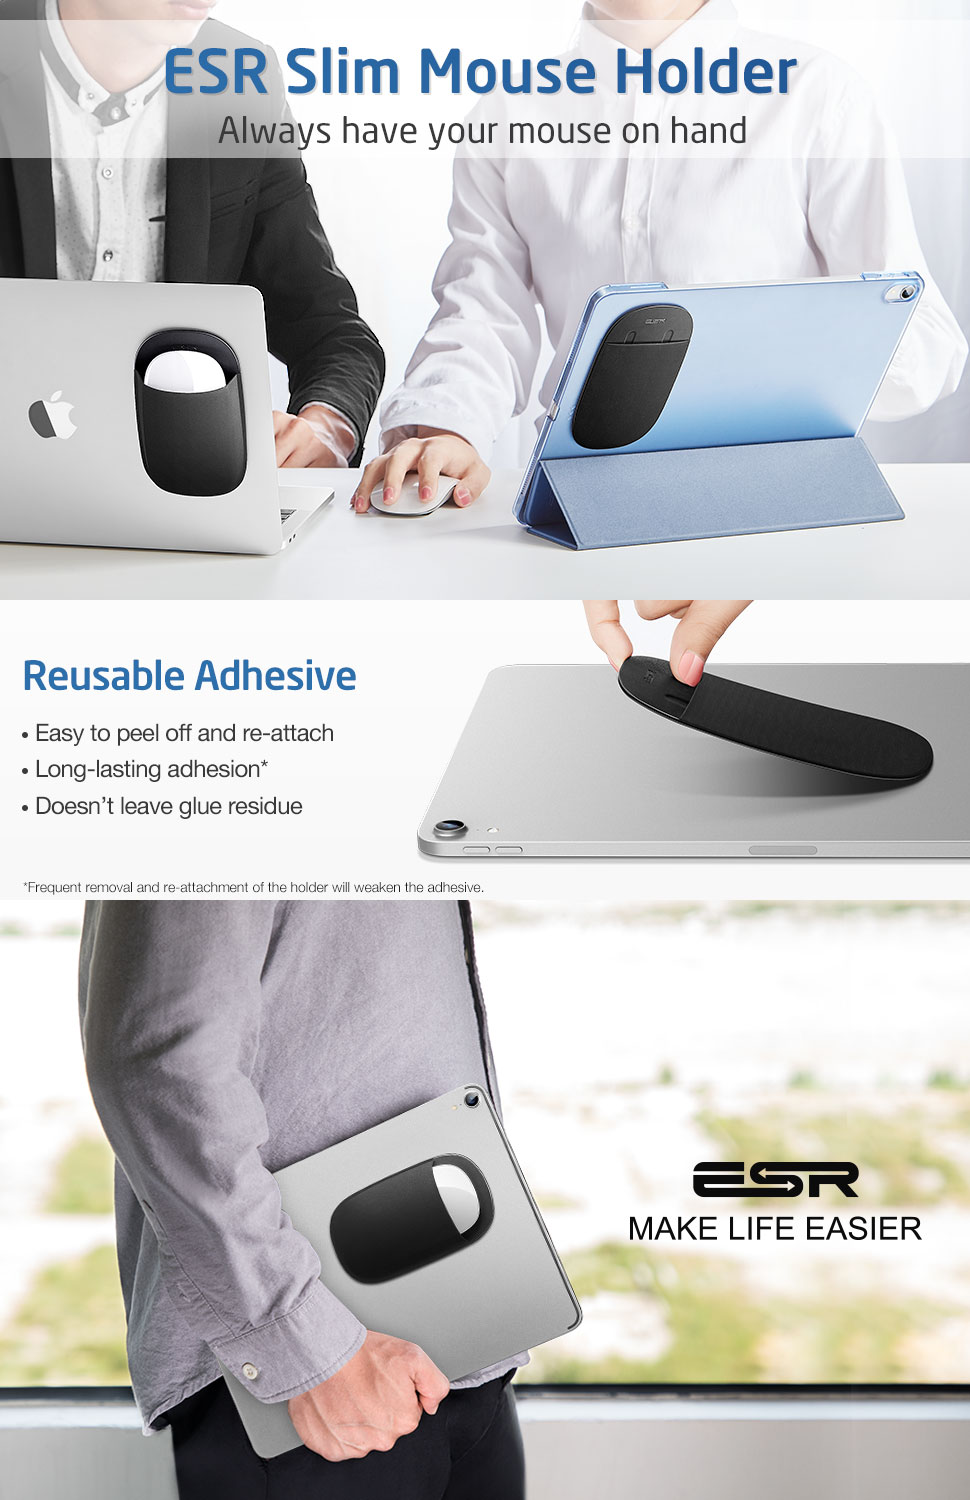 ESR Slim Mouse Holder Always Have your Mouse on Hand